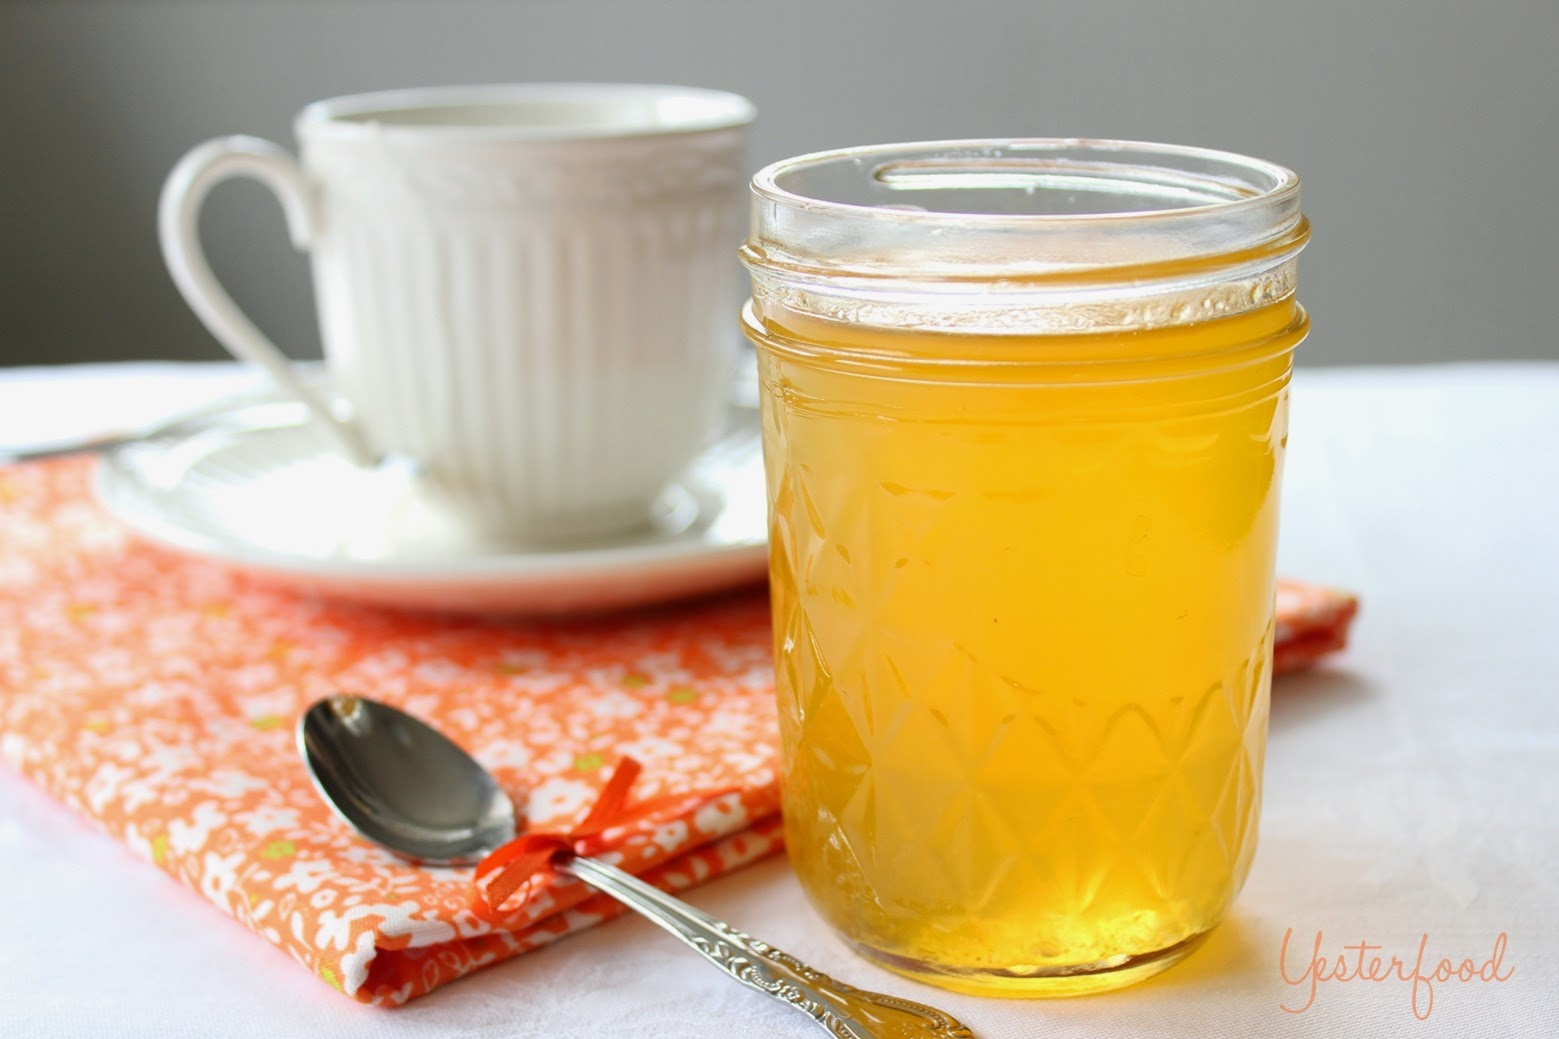 Yesterfood: Clementine Simple Syrup